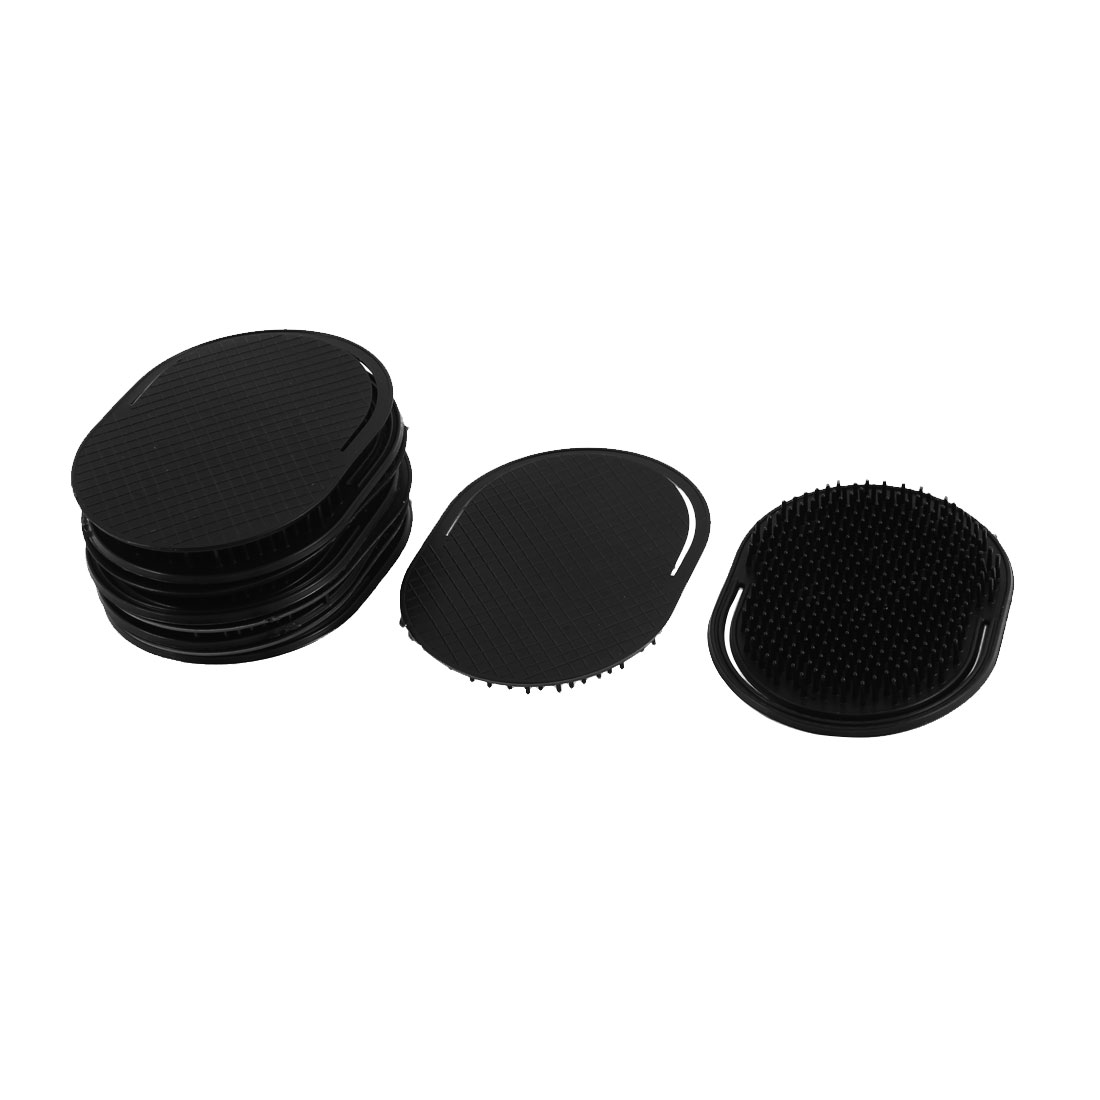 Travel Hair Beard Palm Hold Comb Scalp Massage Brush Black 10Pcs